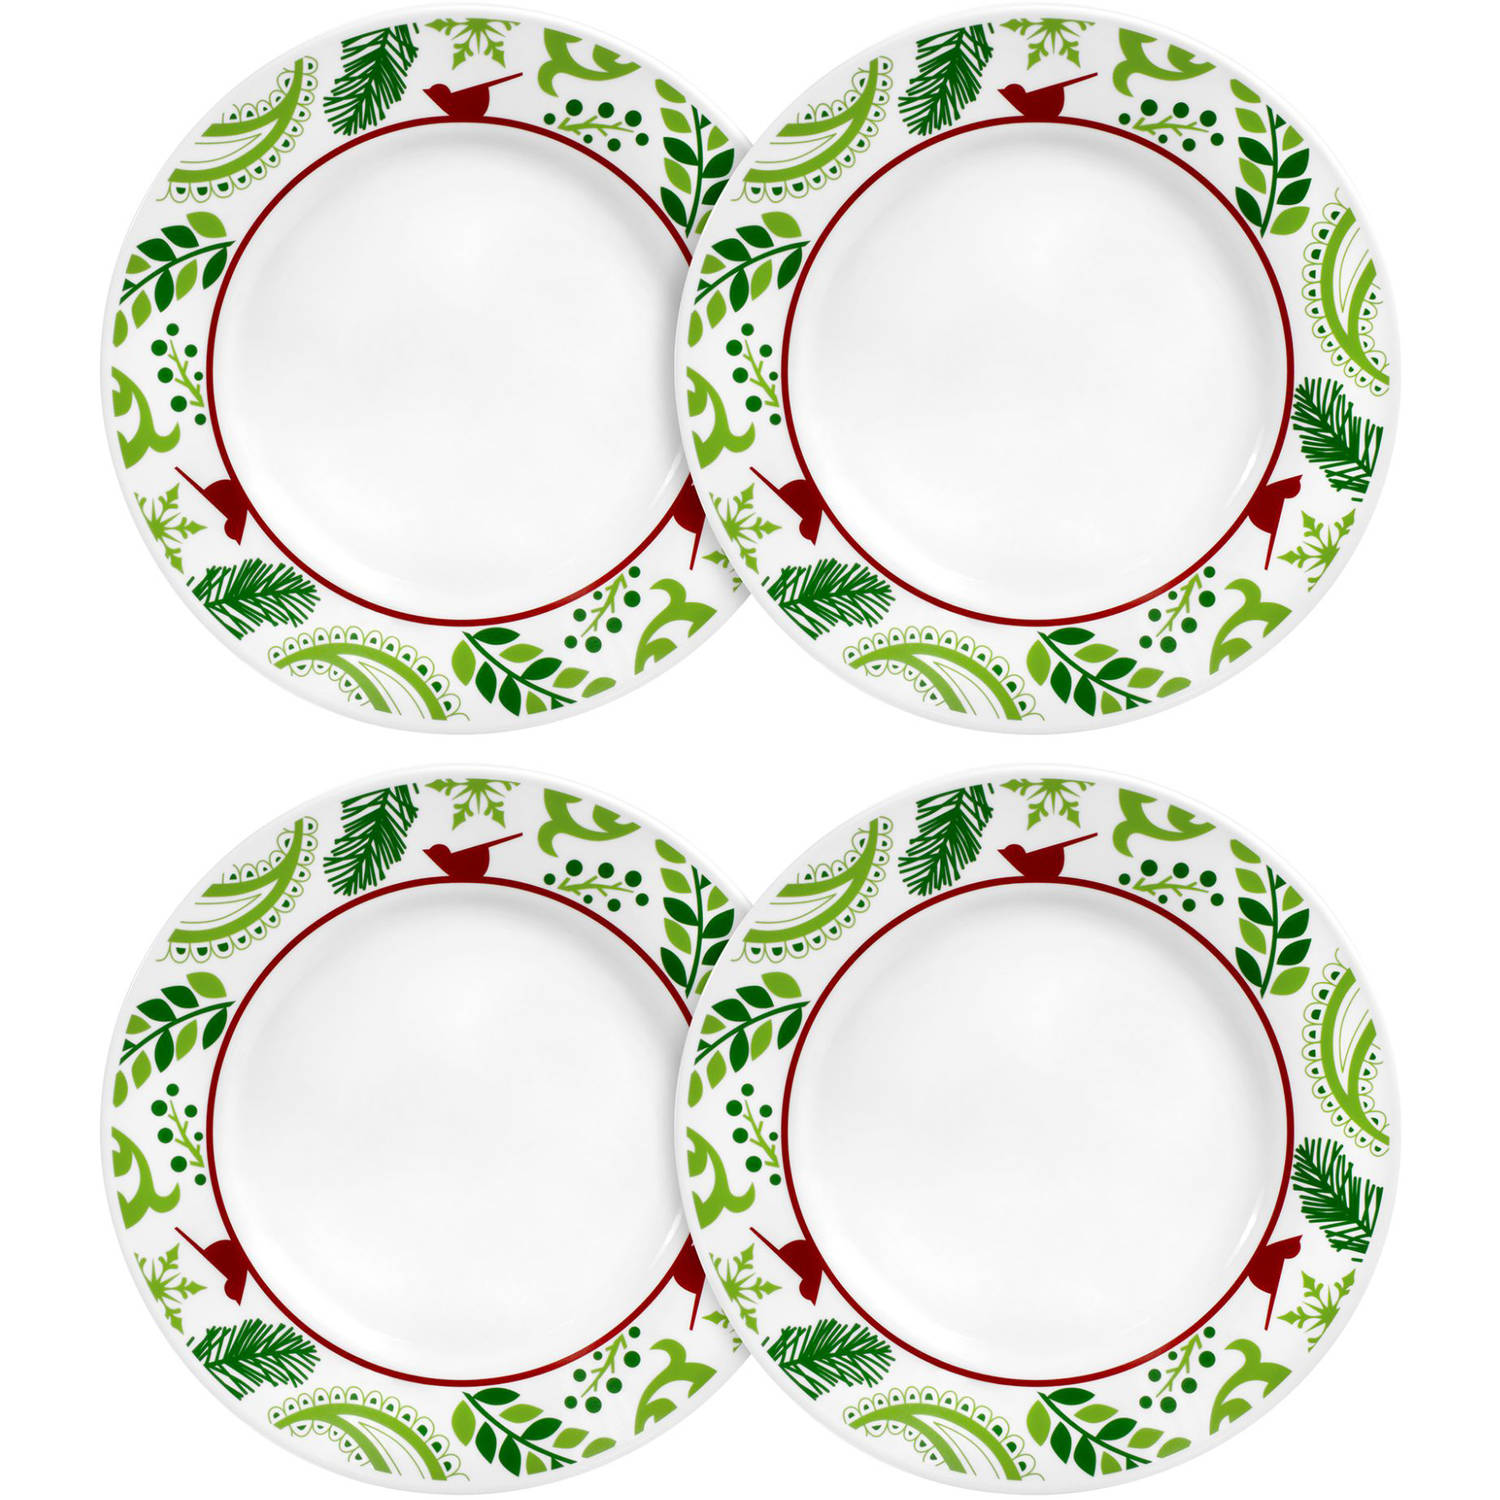 Corelle Impressions 10.75  Dinner Plate Birds and Boughs Set of 4 - Walmart.com  sc 1 st  Walmart & Corelle Impressions 10.75